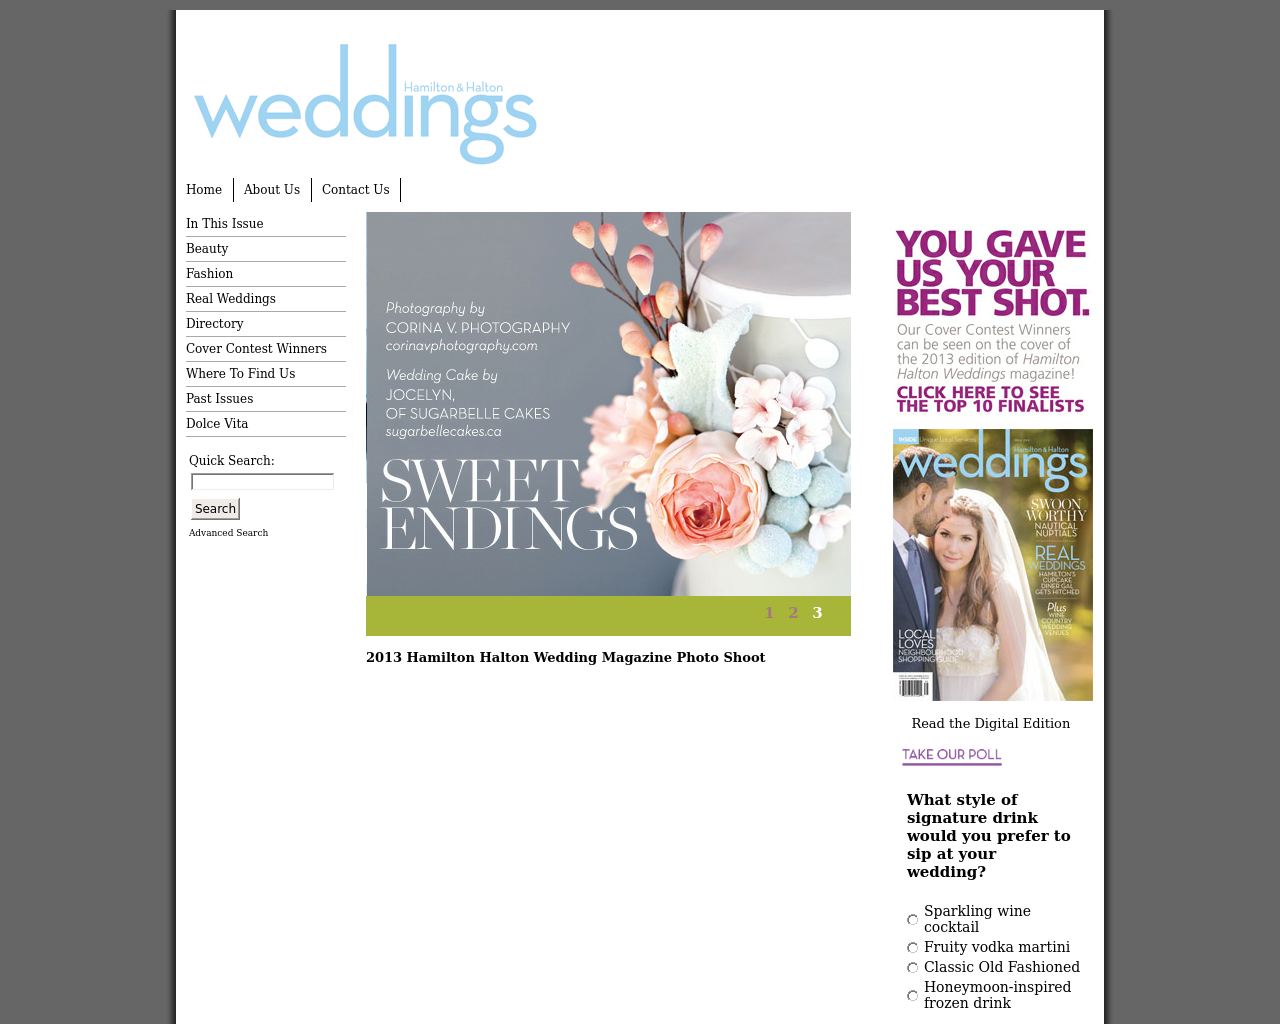 Hamilton-&-Halton-Weddings-Advertising-Reviews-Pricing